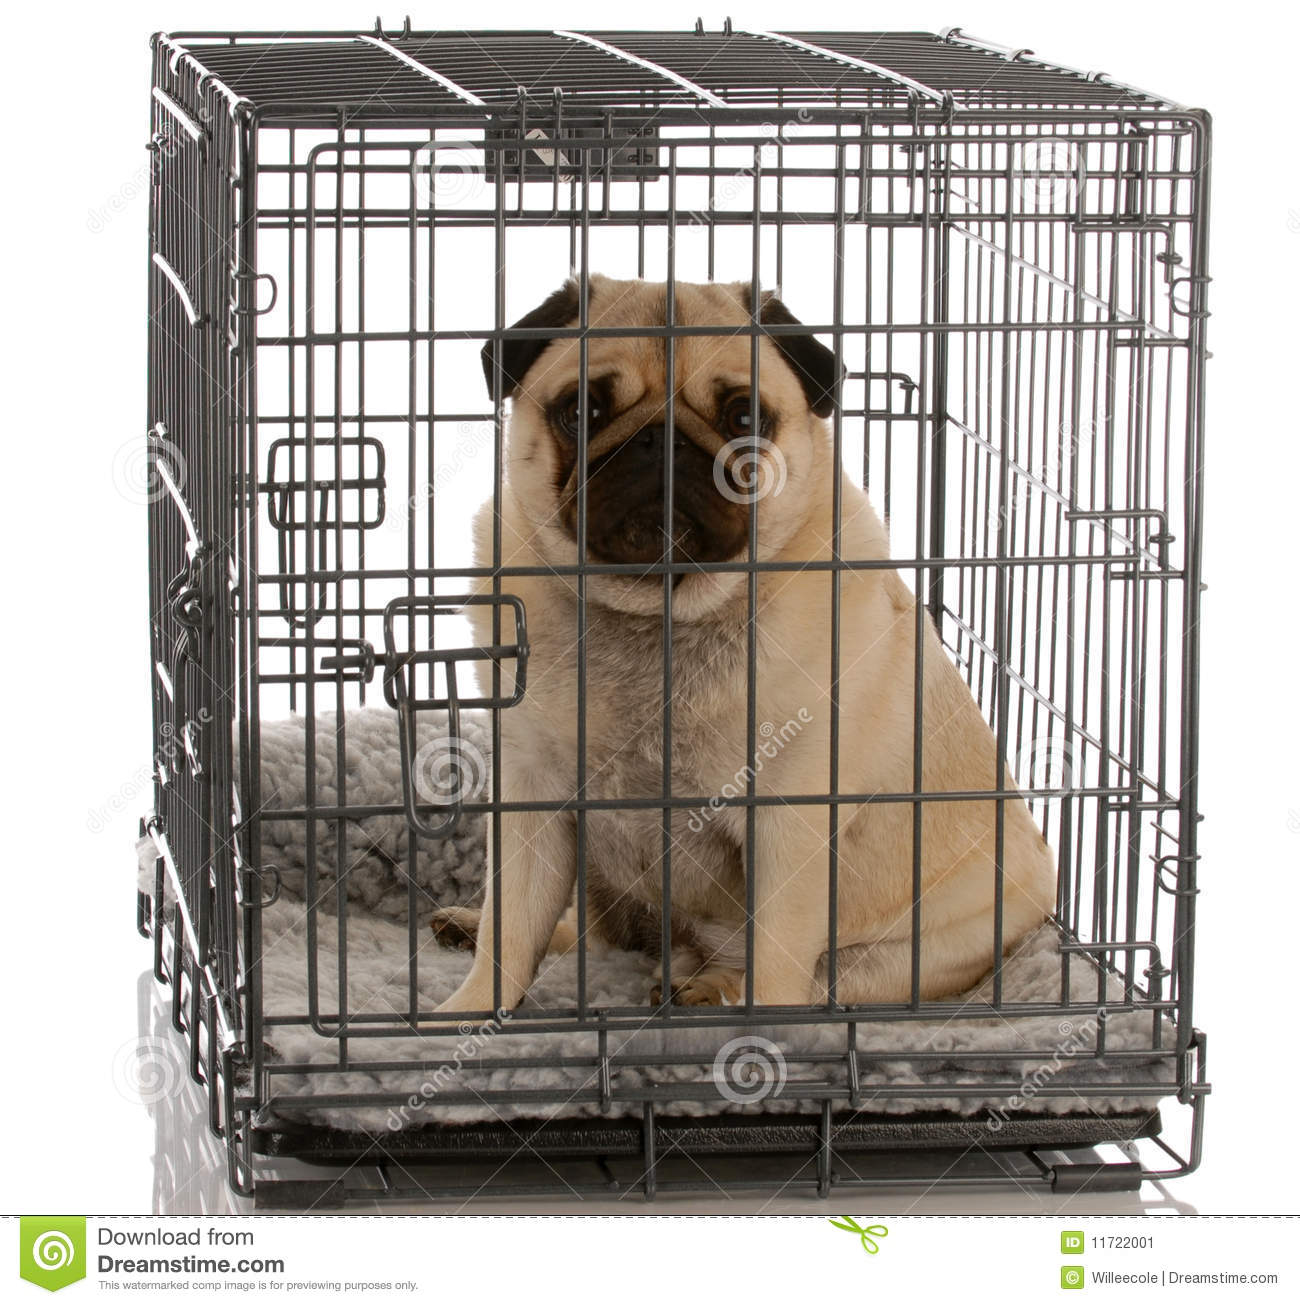 Dog Sitting In Wire Crate Stock Image - Image: 11722001